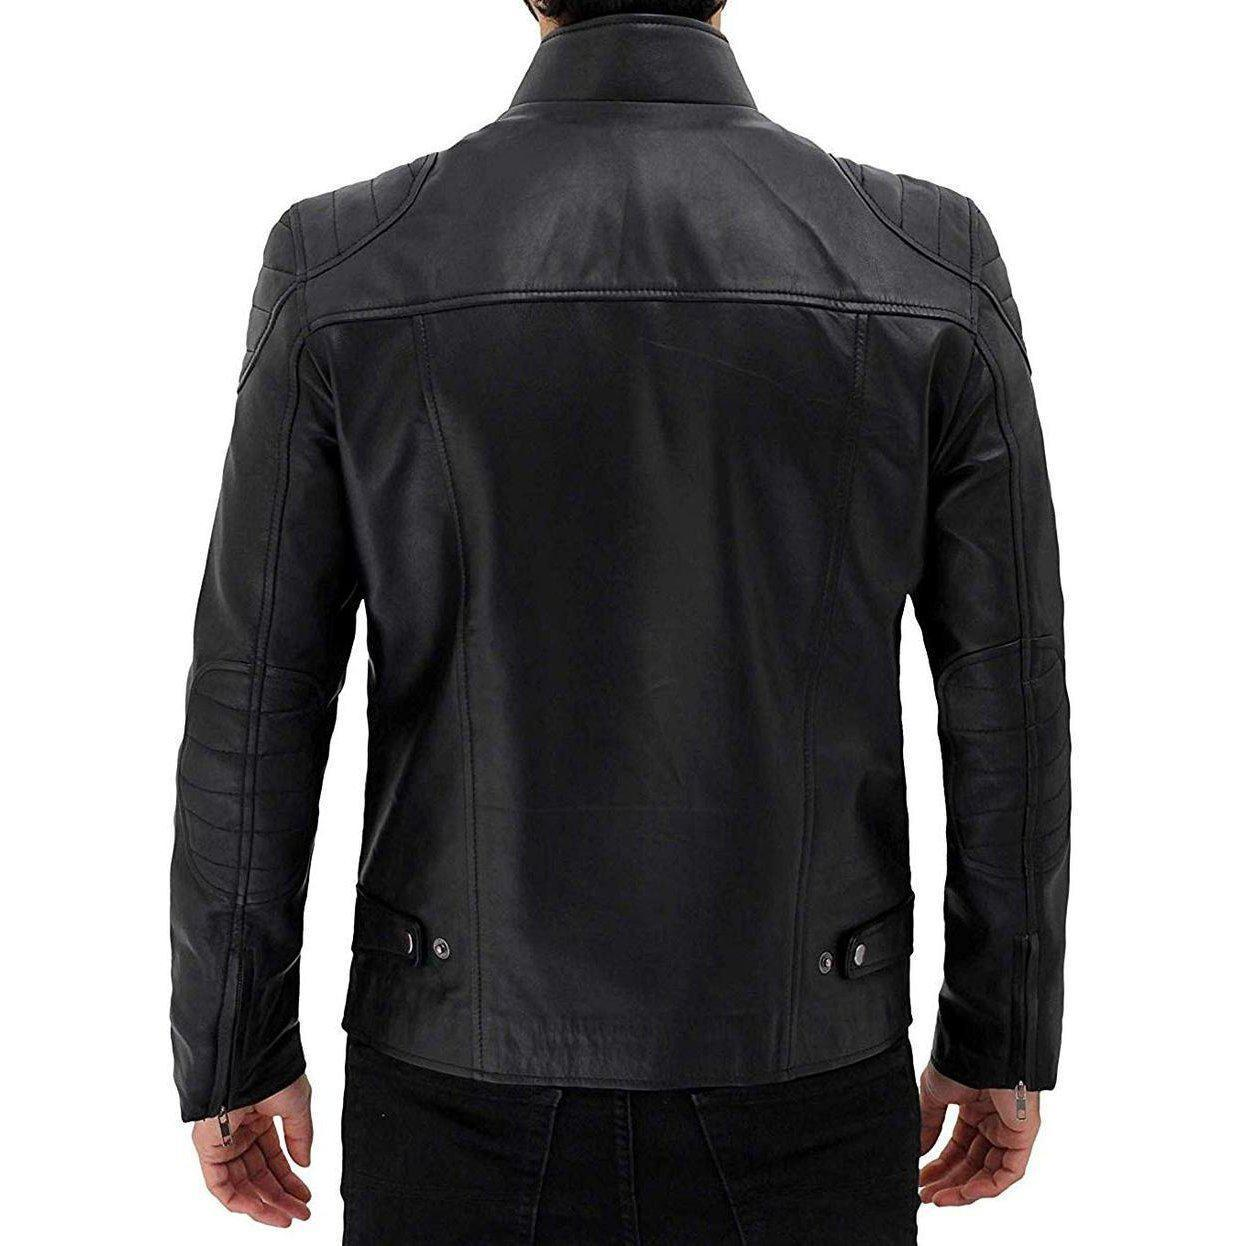 Black Stylish Original Leather Jacket for Men - Leather Jacket